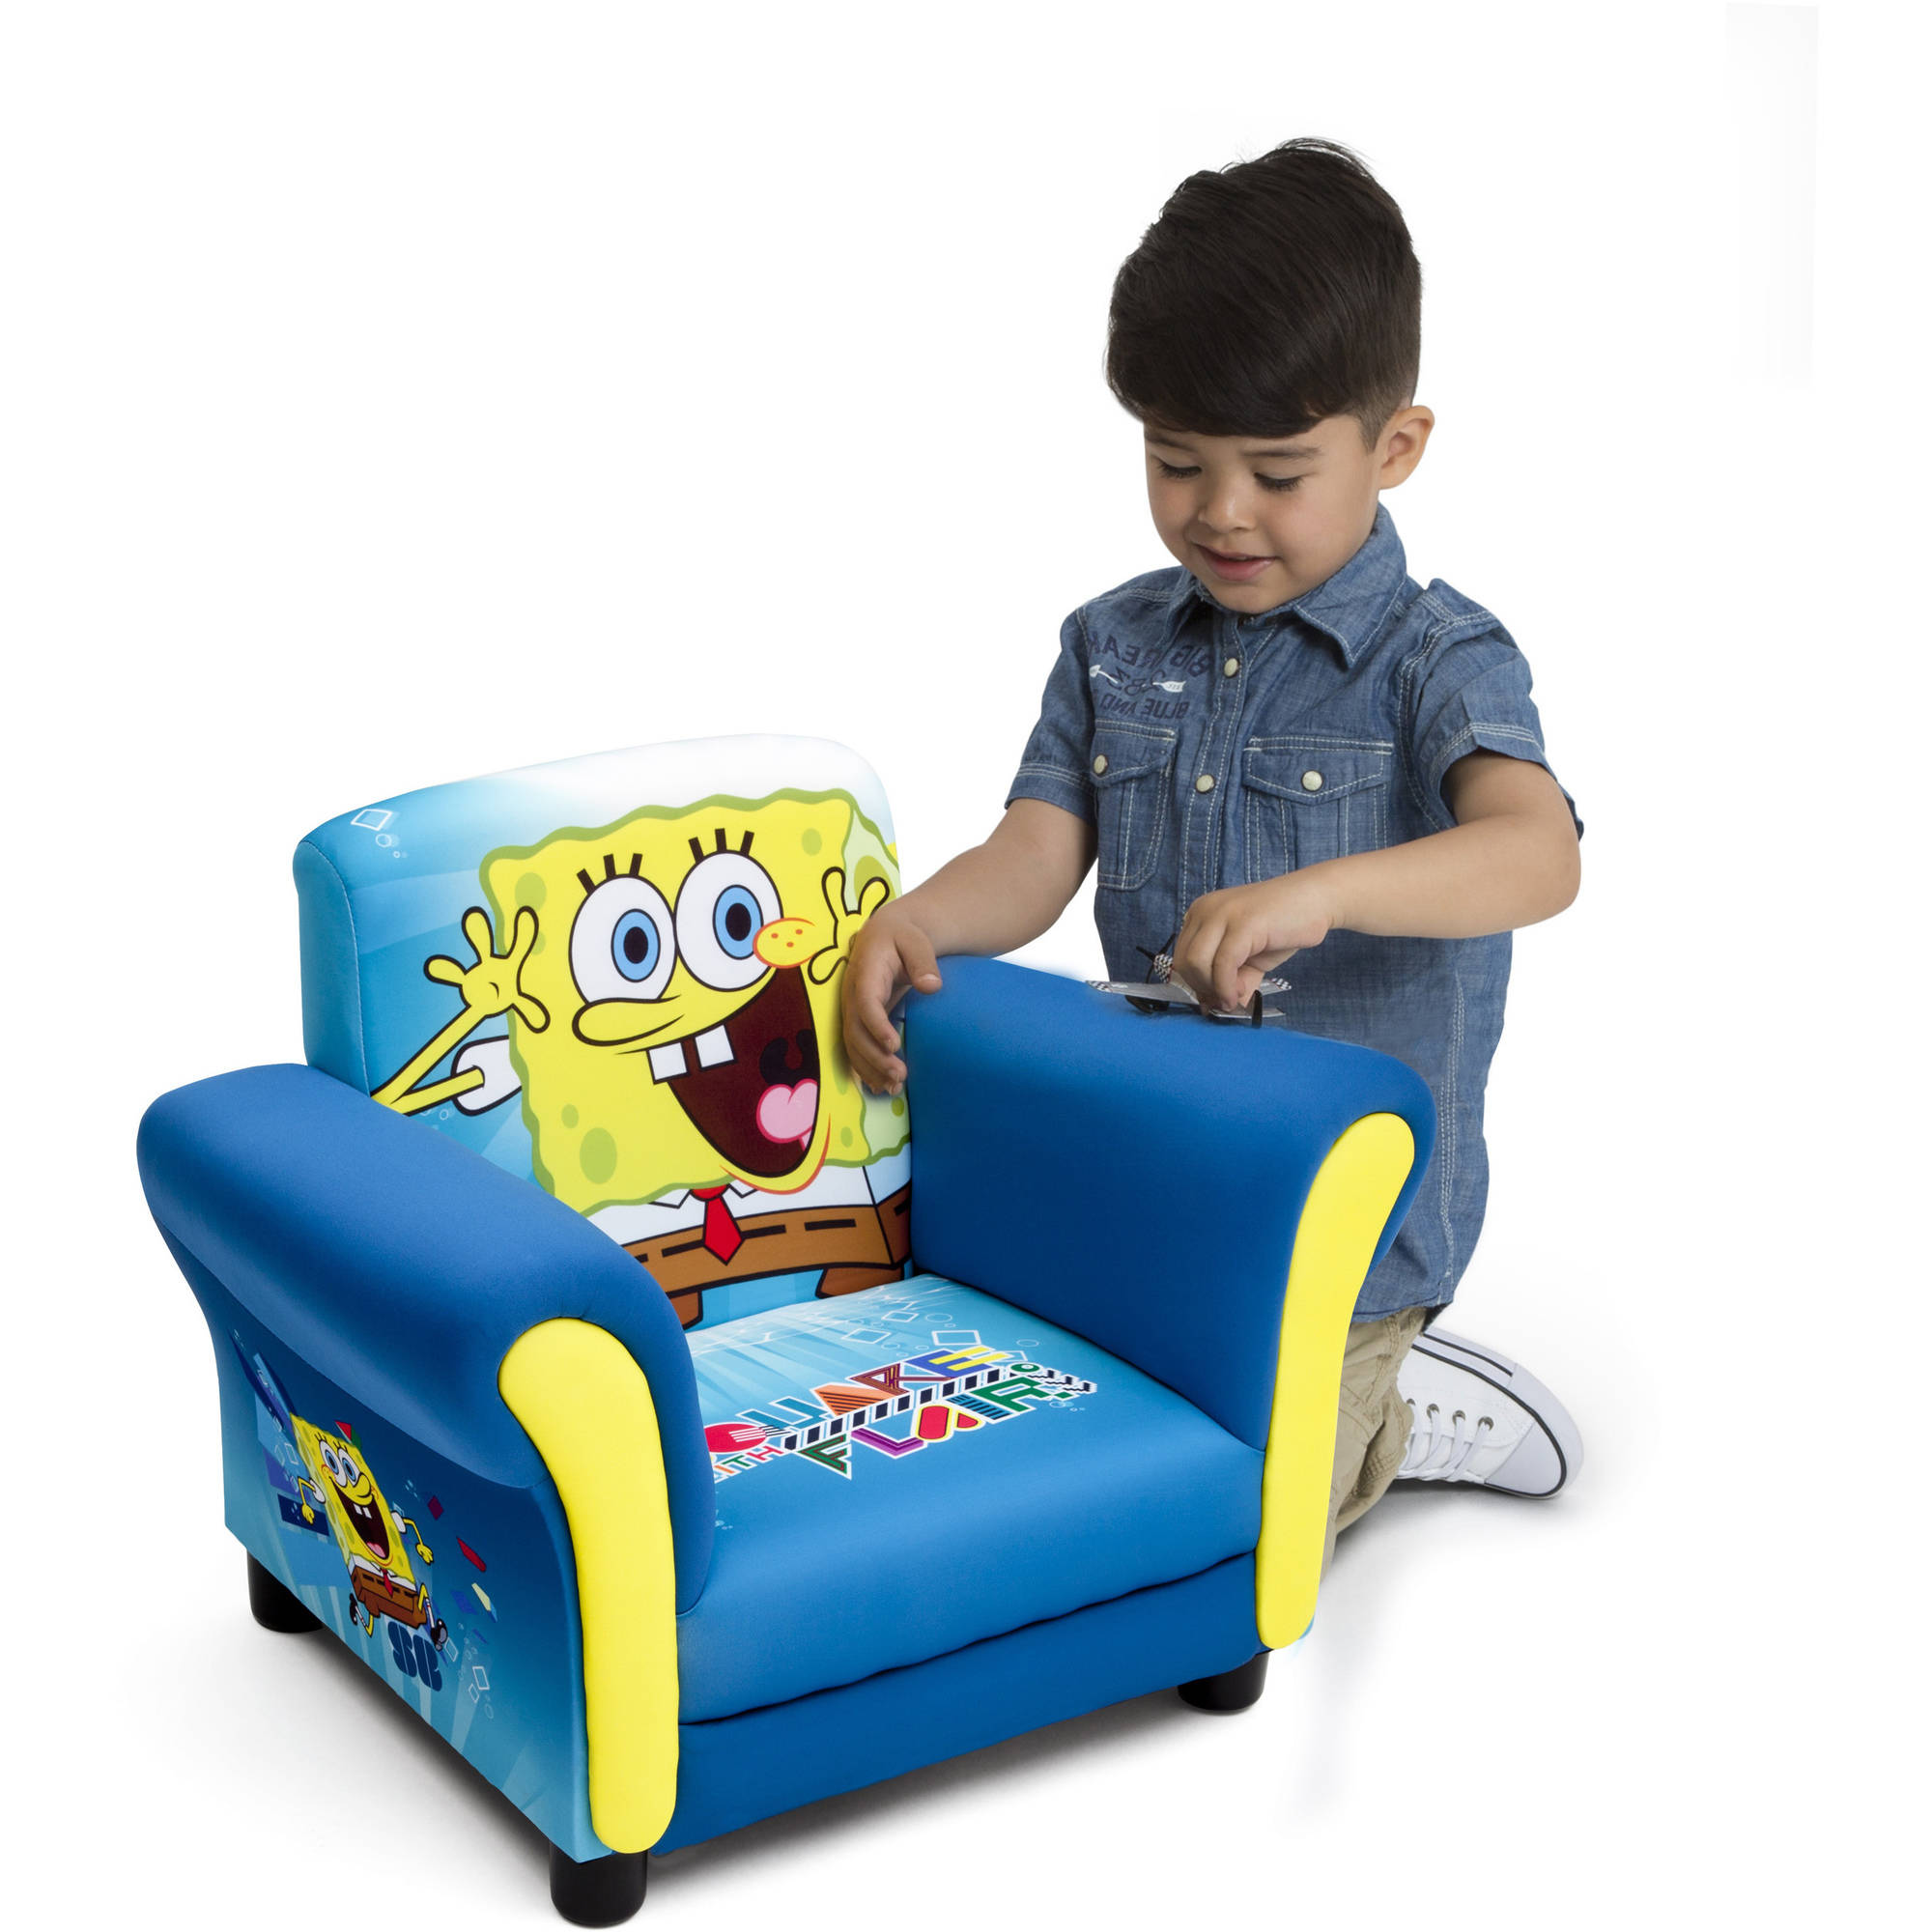 Delta Children's Products Nickelodeon SpongeBob Upholstered Chair by Nickelodeon